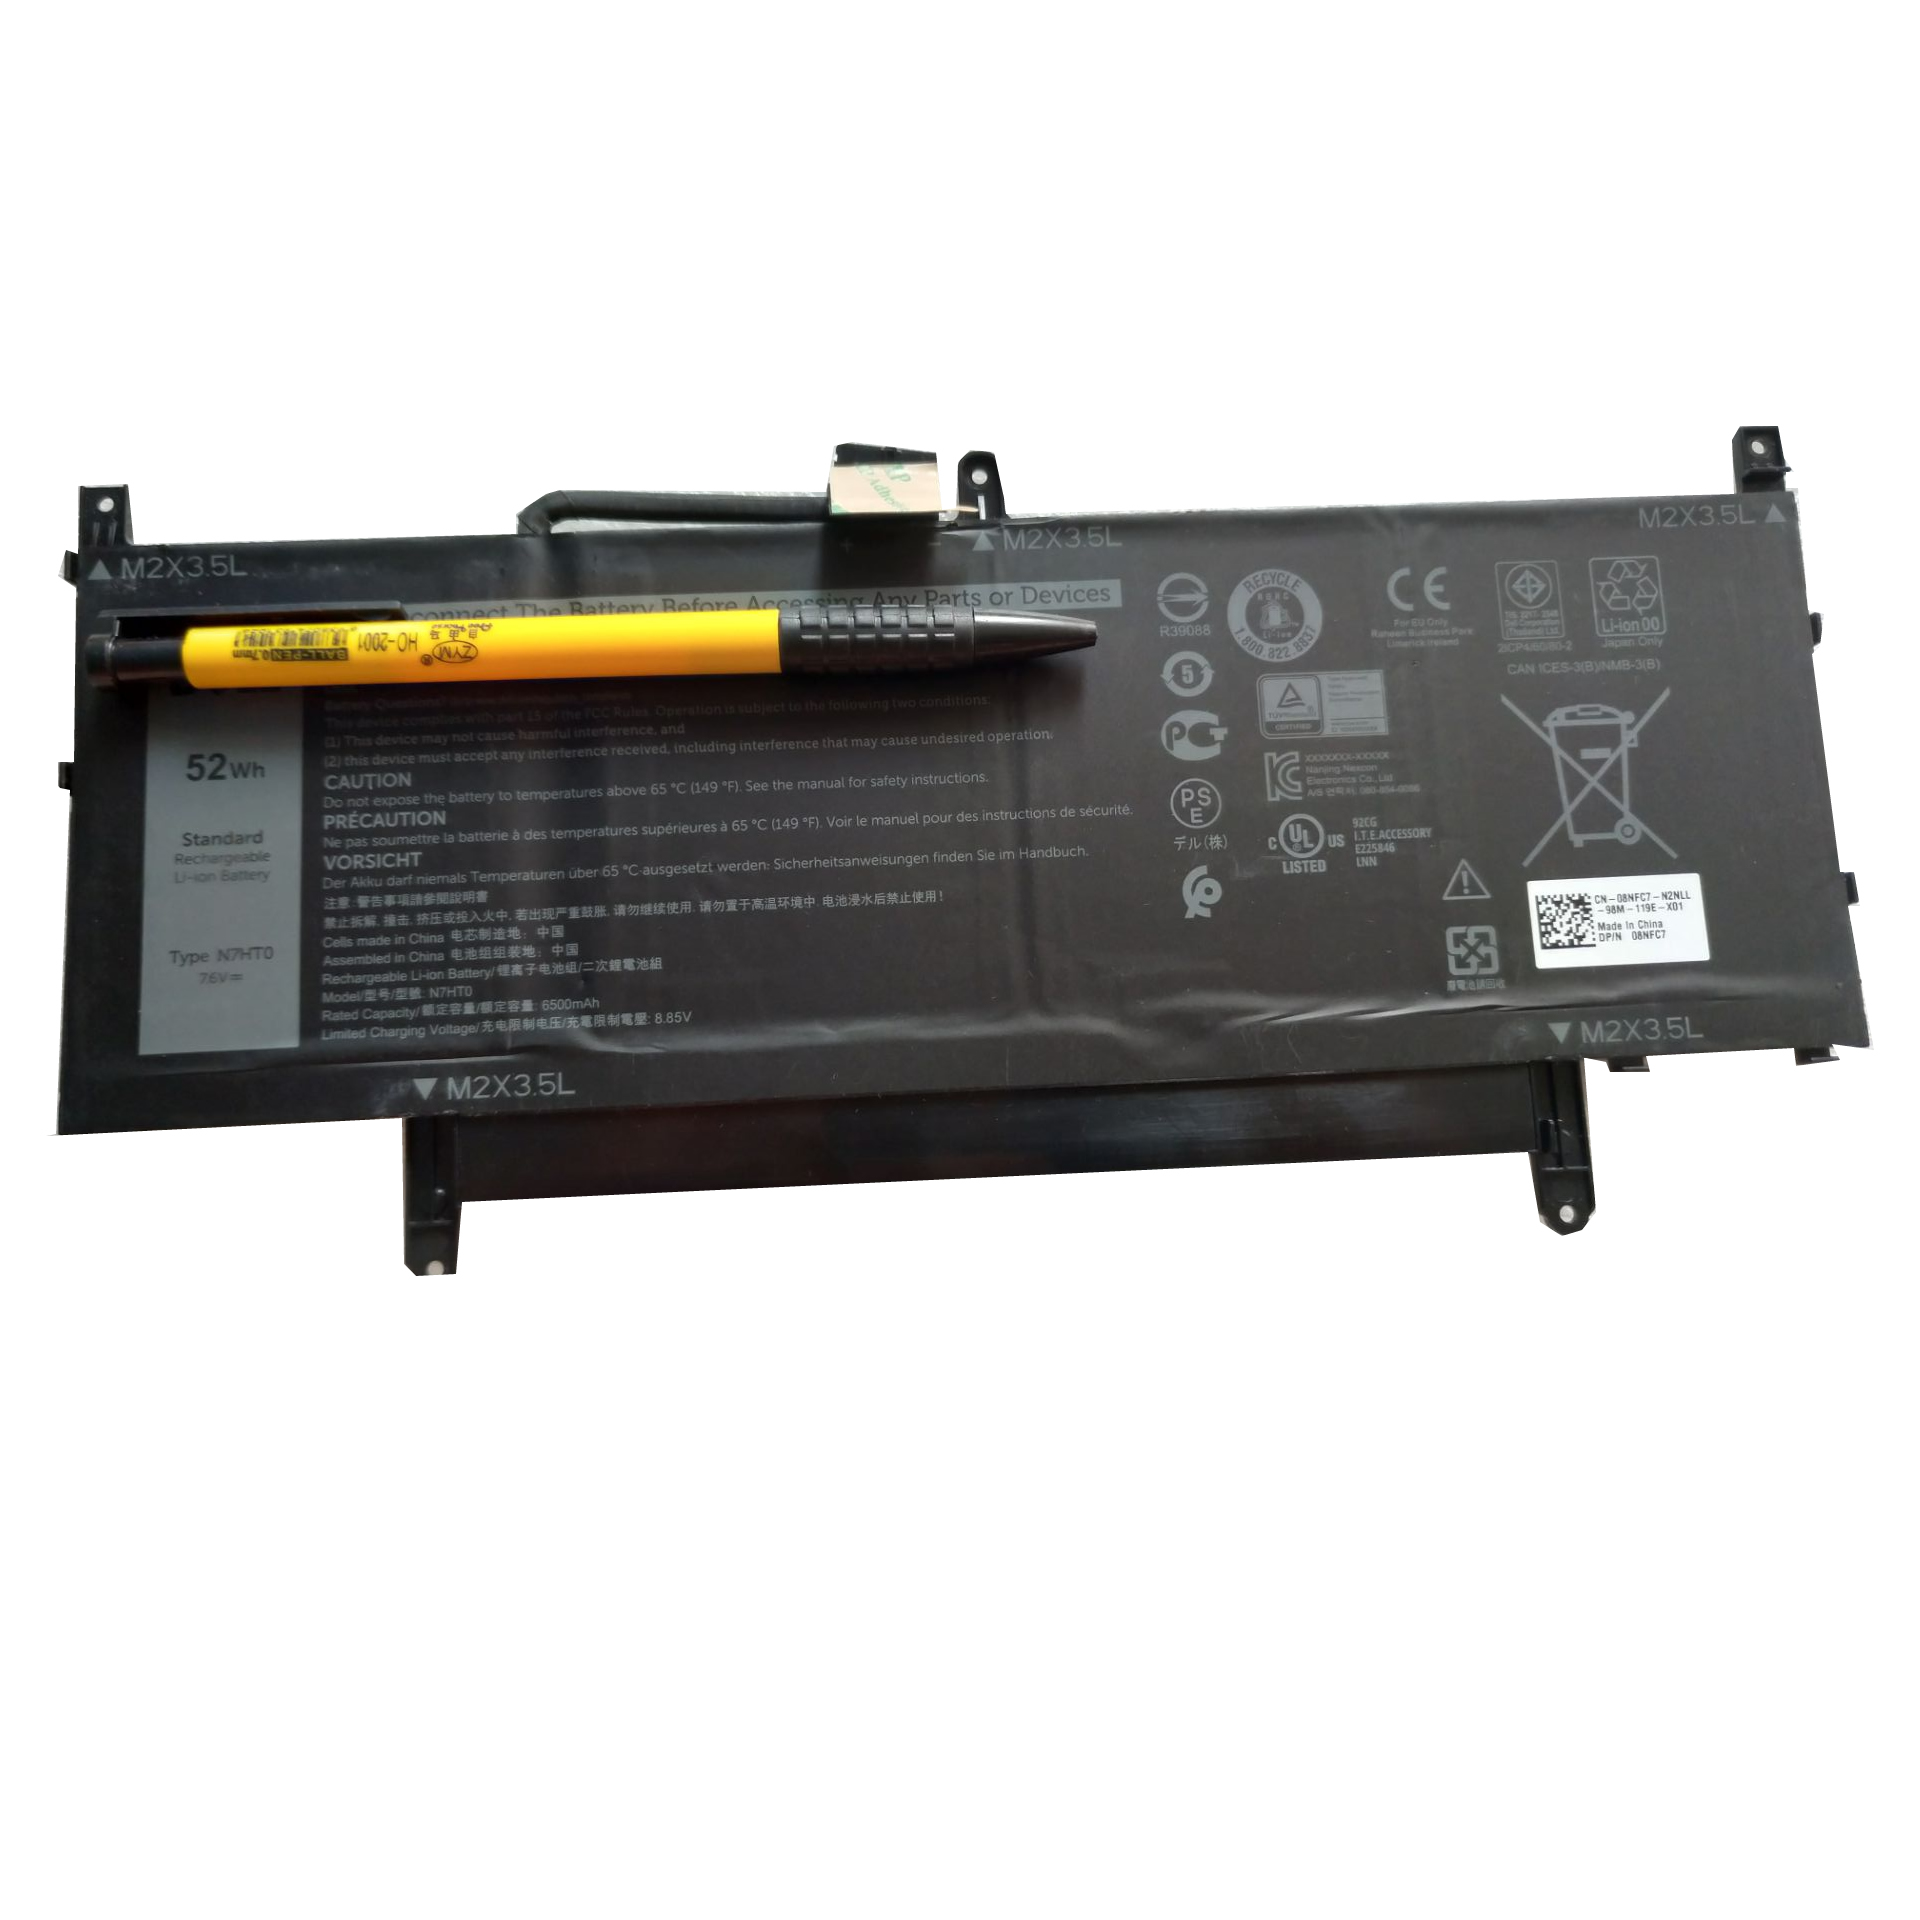 Batterie originale Dell 08NFC7 N7HT0 N7HTO 7.6V 6840mAh, 52Wh pour ordinateur portable Dell N7HTO 08NFC7 séries